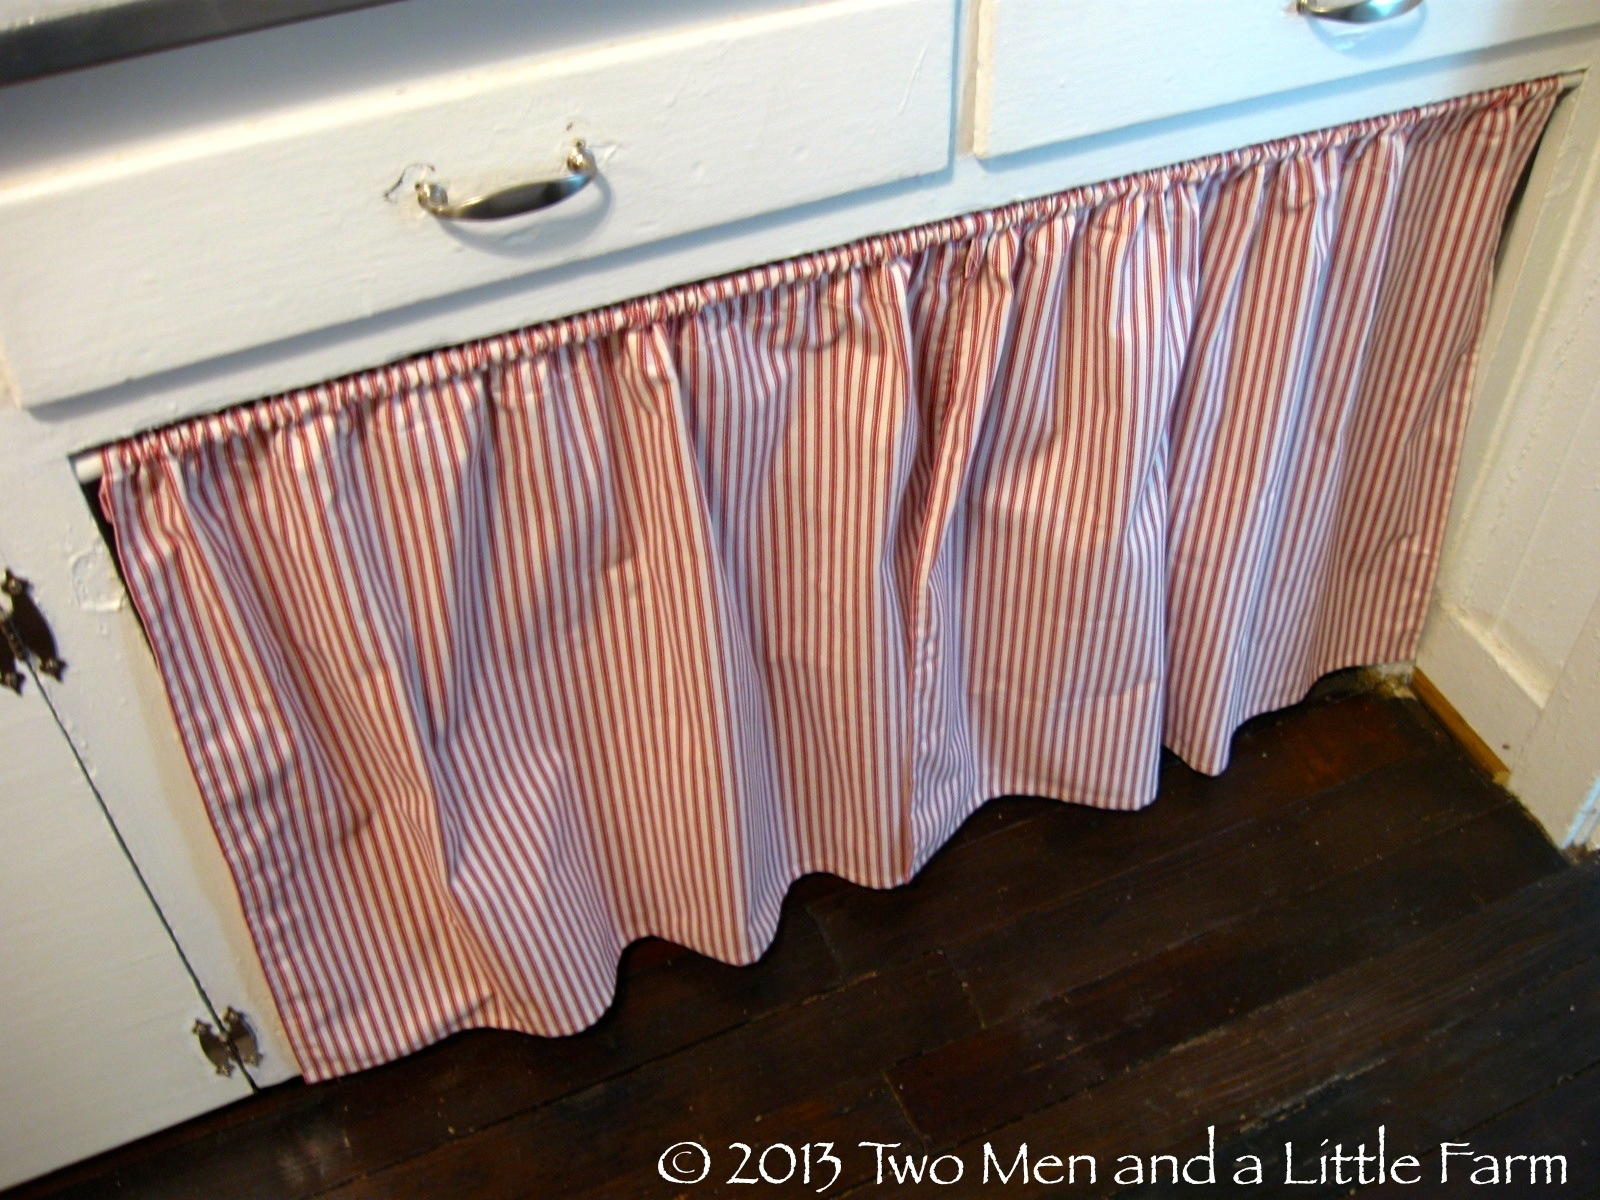 Covering Kitchen Cabinets With Fabric